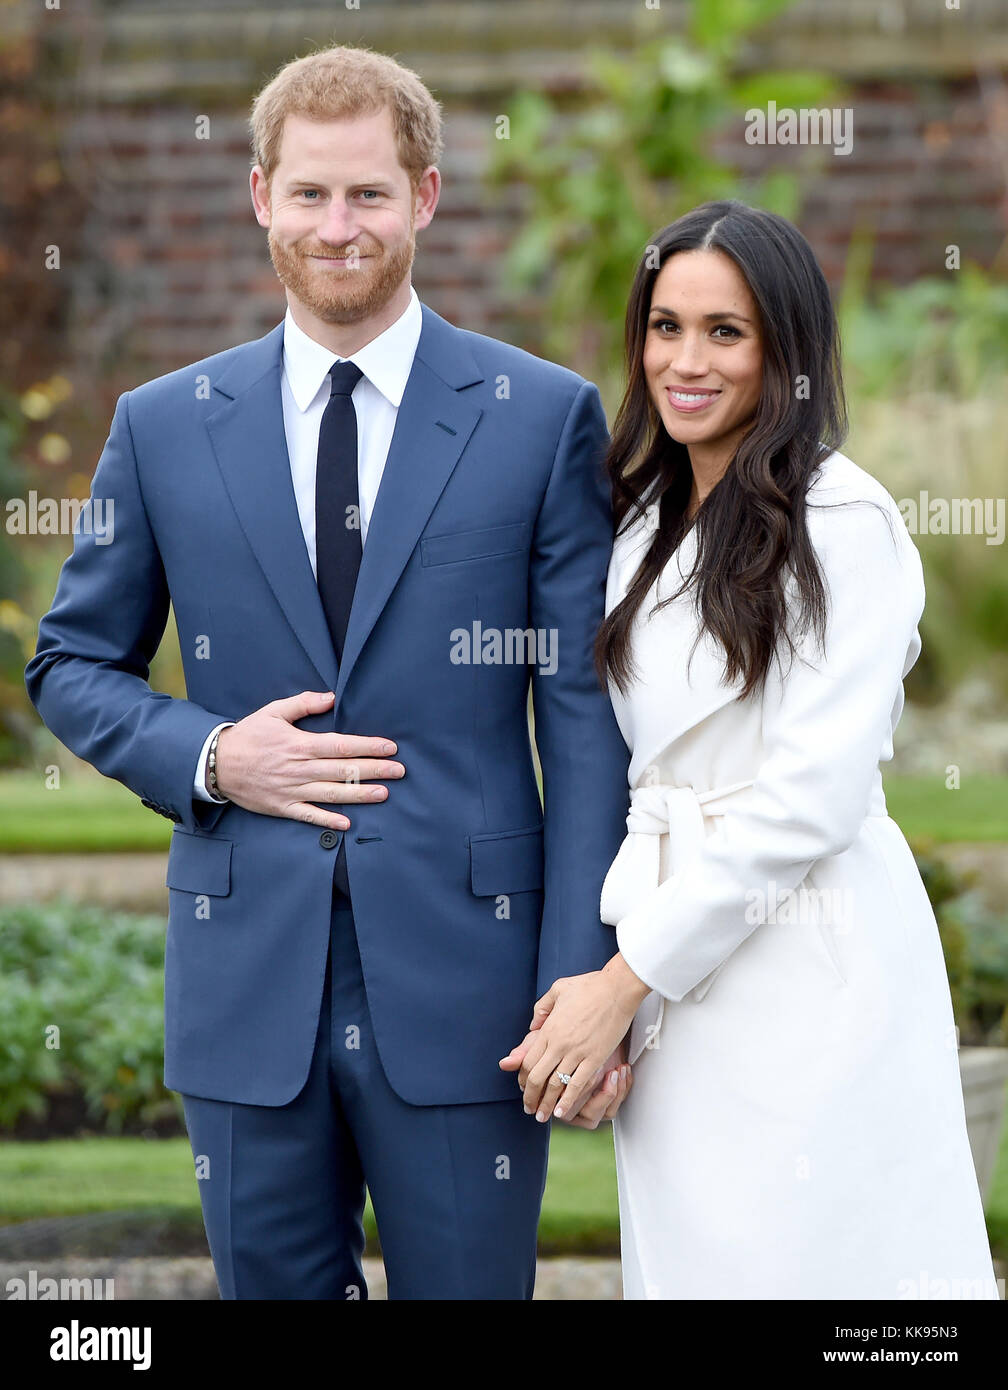 Photo Must Be Credited ©Alpha Press 079965 27/11/2017 Prince Harry and Meghan Markle Engagement Photocall in the Sunken Garden at Kensington Palace in London. Stock Photo